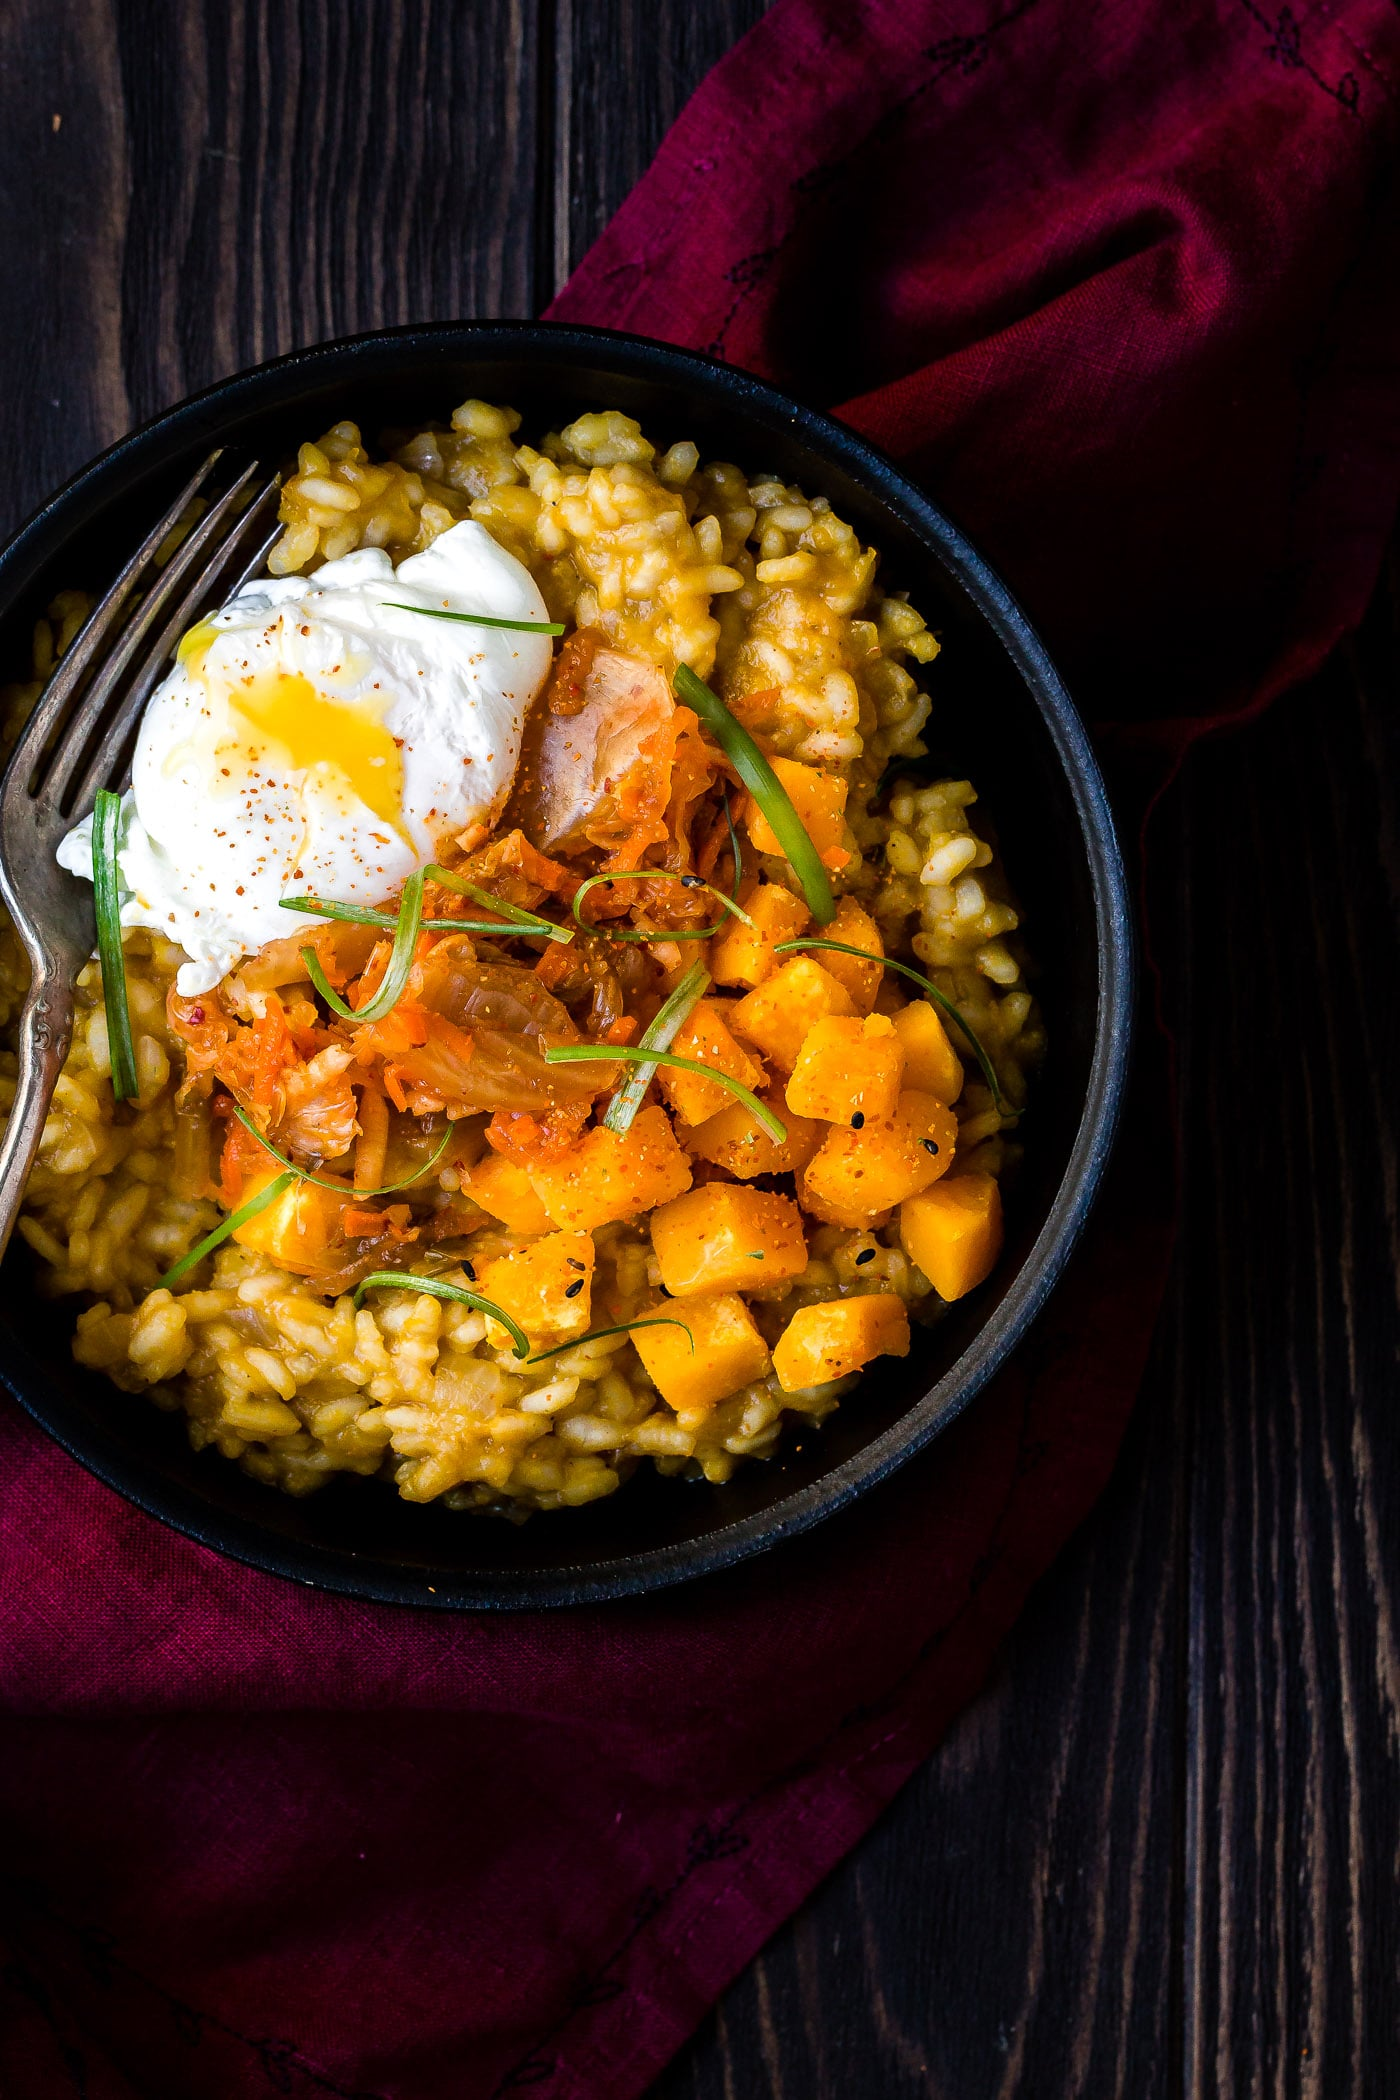 Kabocha Squash Risotto with pierced egg